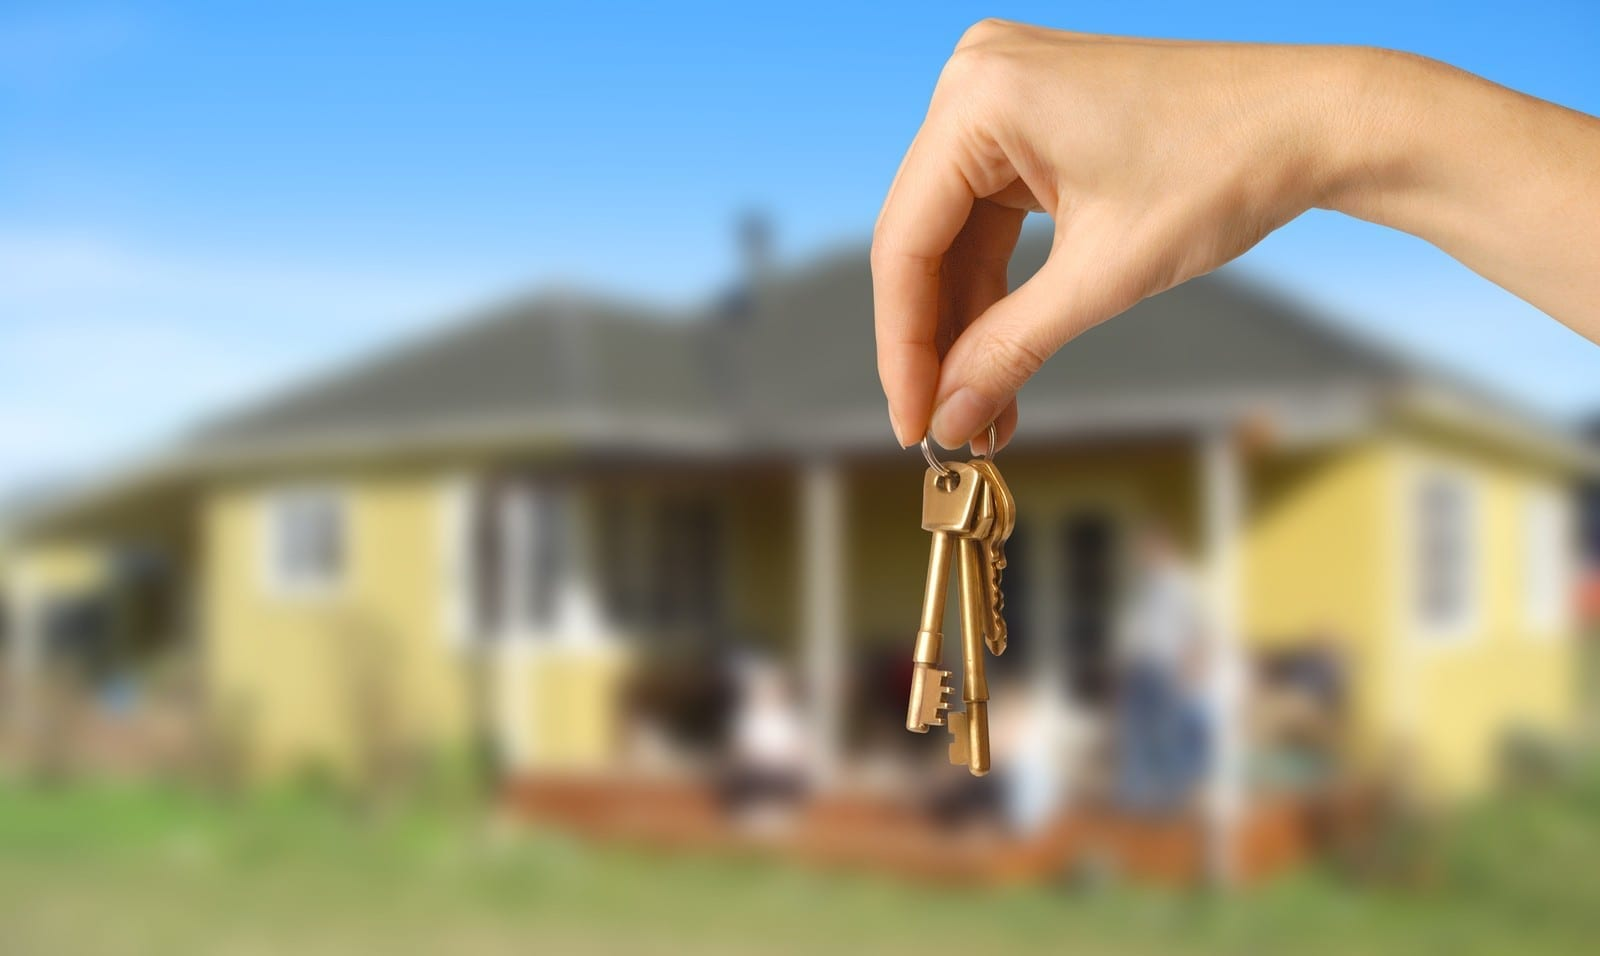 holding key in front of home